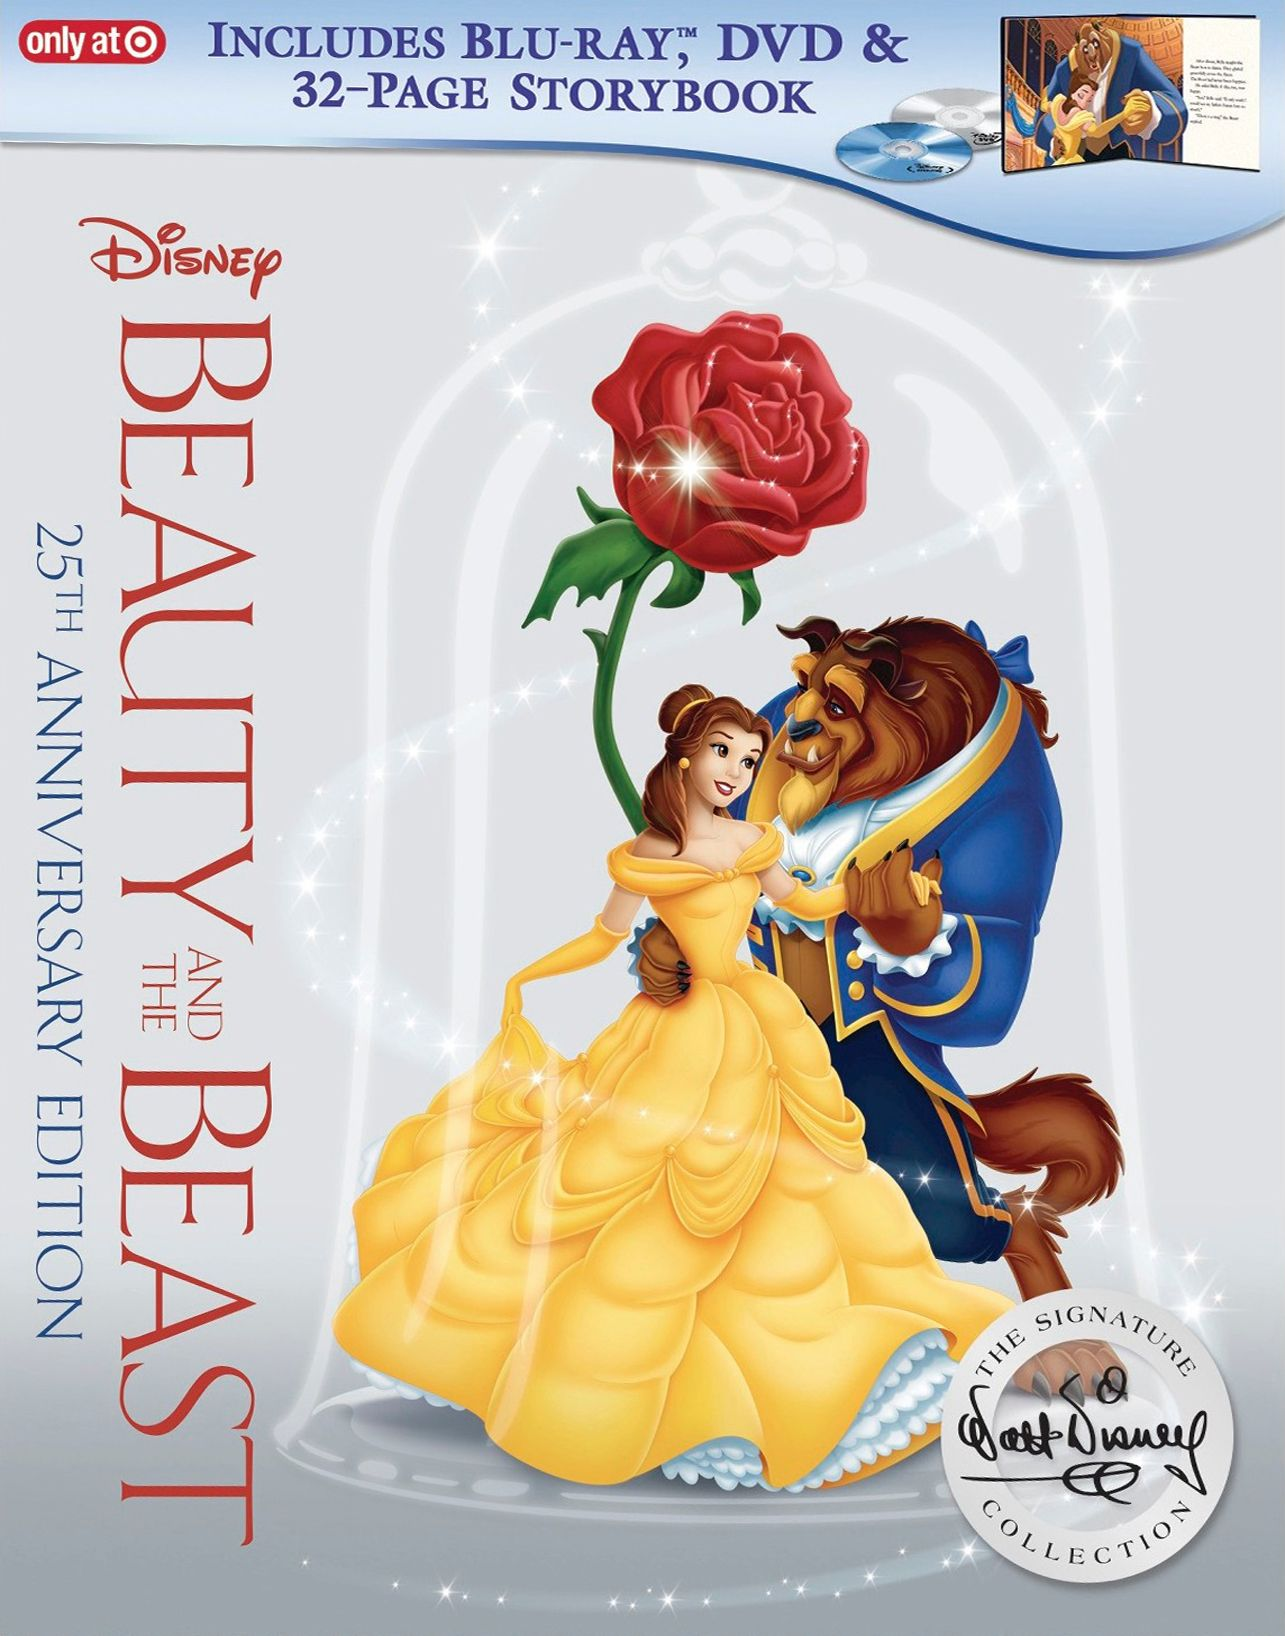 Beauty And The Beast Blu Ray 25th Anniversary Edition 32 Page Story Book Beauty And The Beast Disney Beauty And The Beast Blu Ray